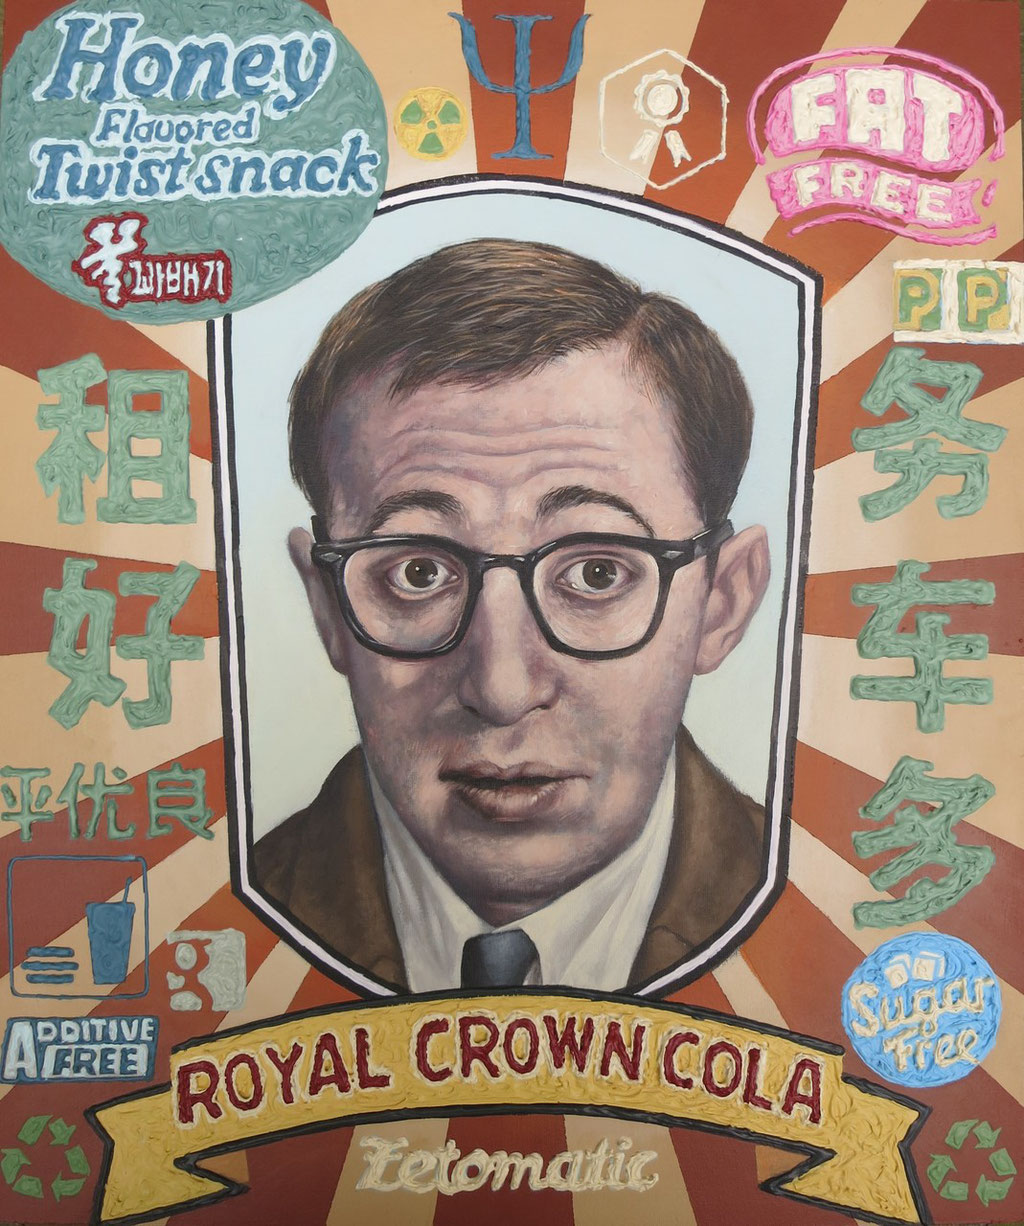 Gemälde 527 Royal Crown Cola, Acryl auf Hartfaserplatte, 2016, 50 x 60 cm